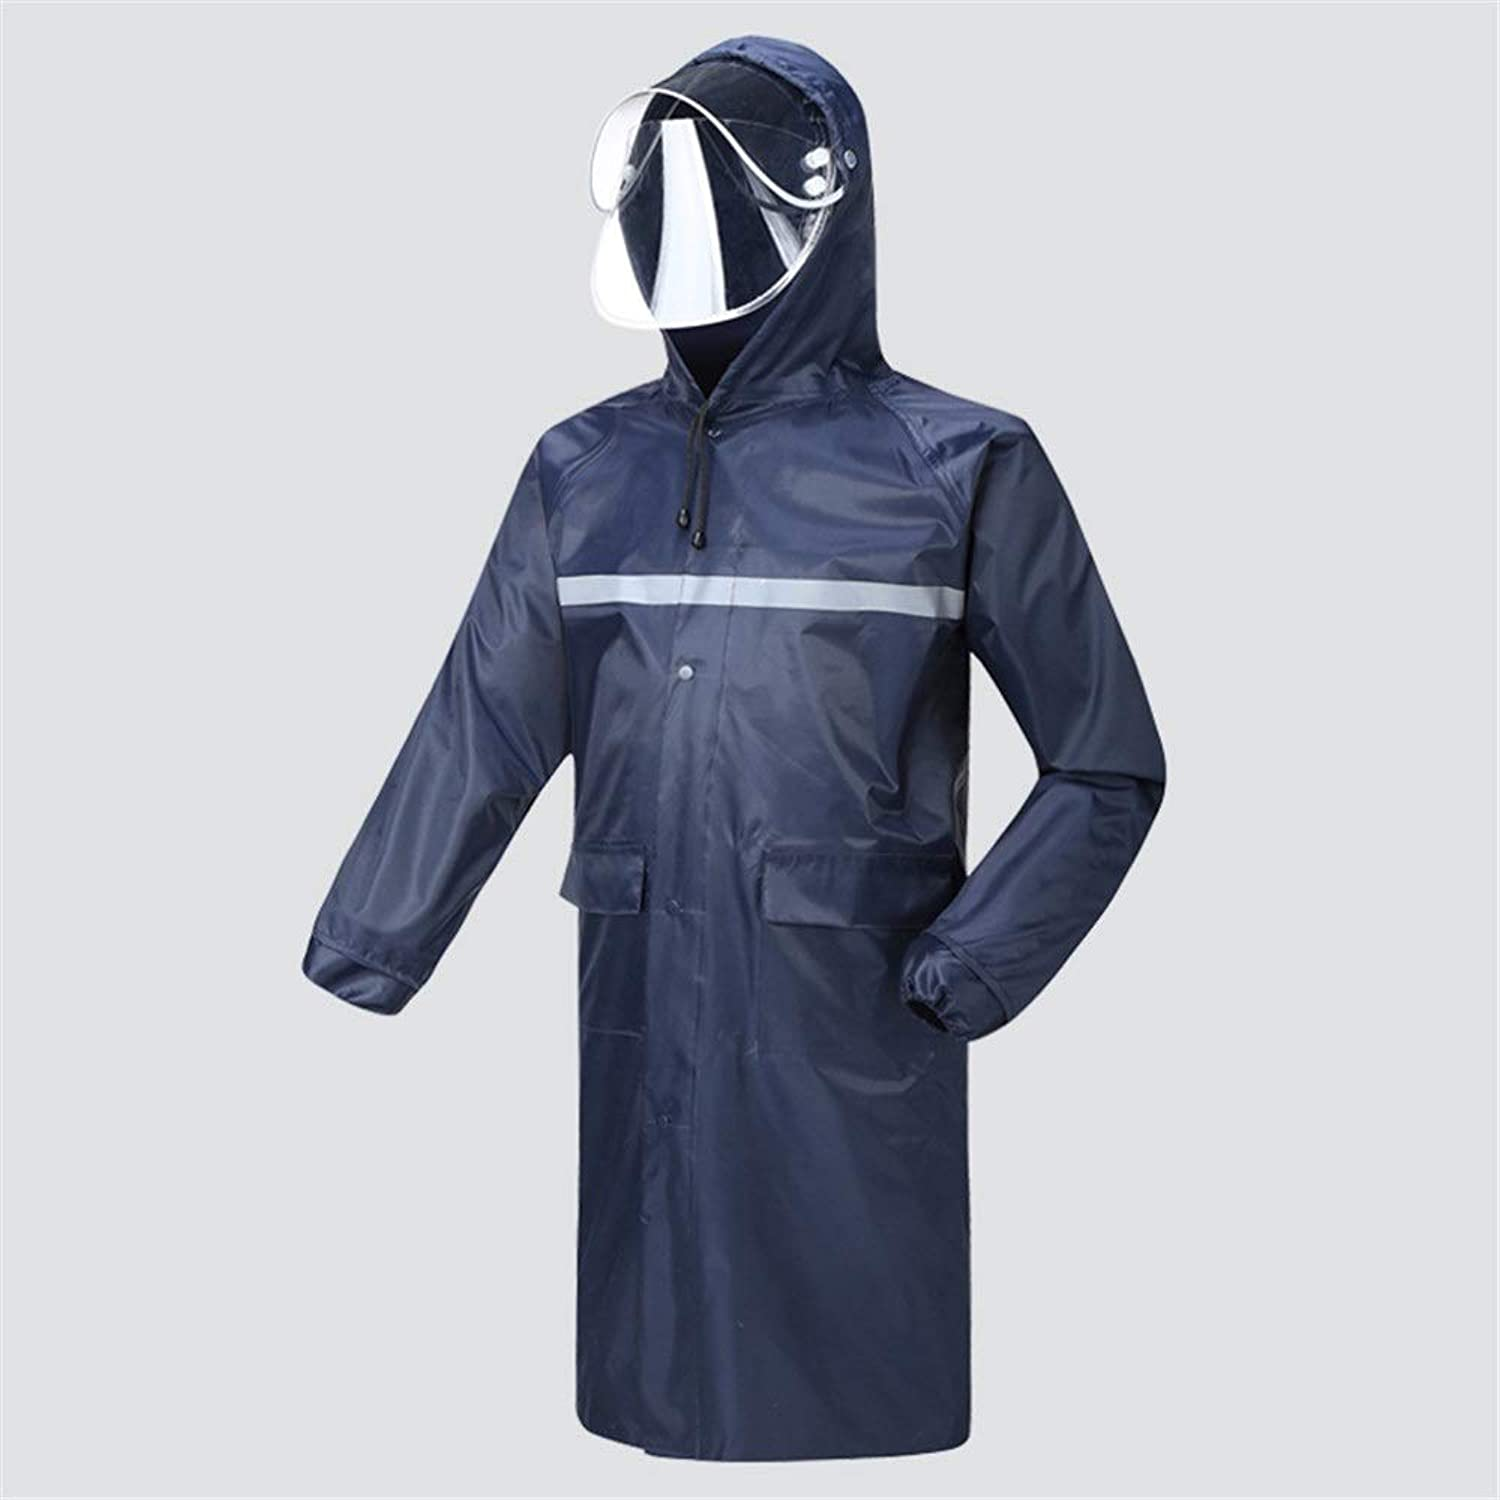 LJGG Raincoat Long Section Raincoat Waterproof Male Female Adult Hiking Breathable Poncho (color   Navy, Size   XL)